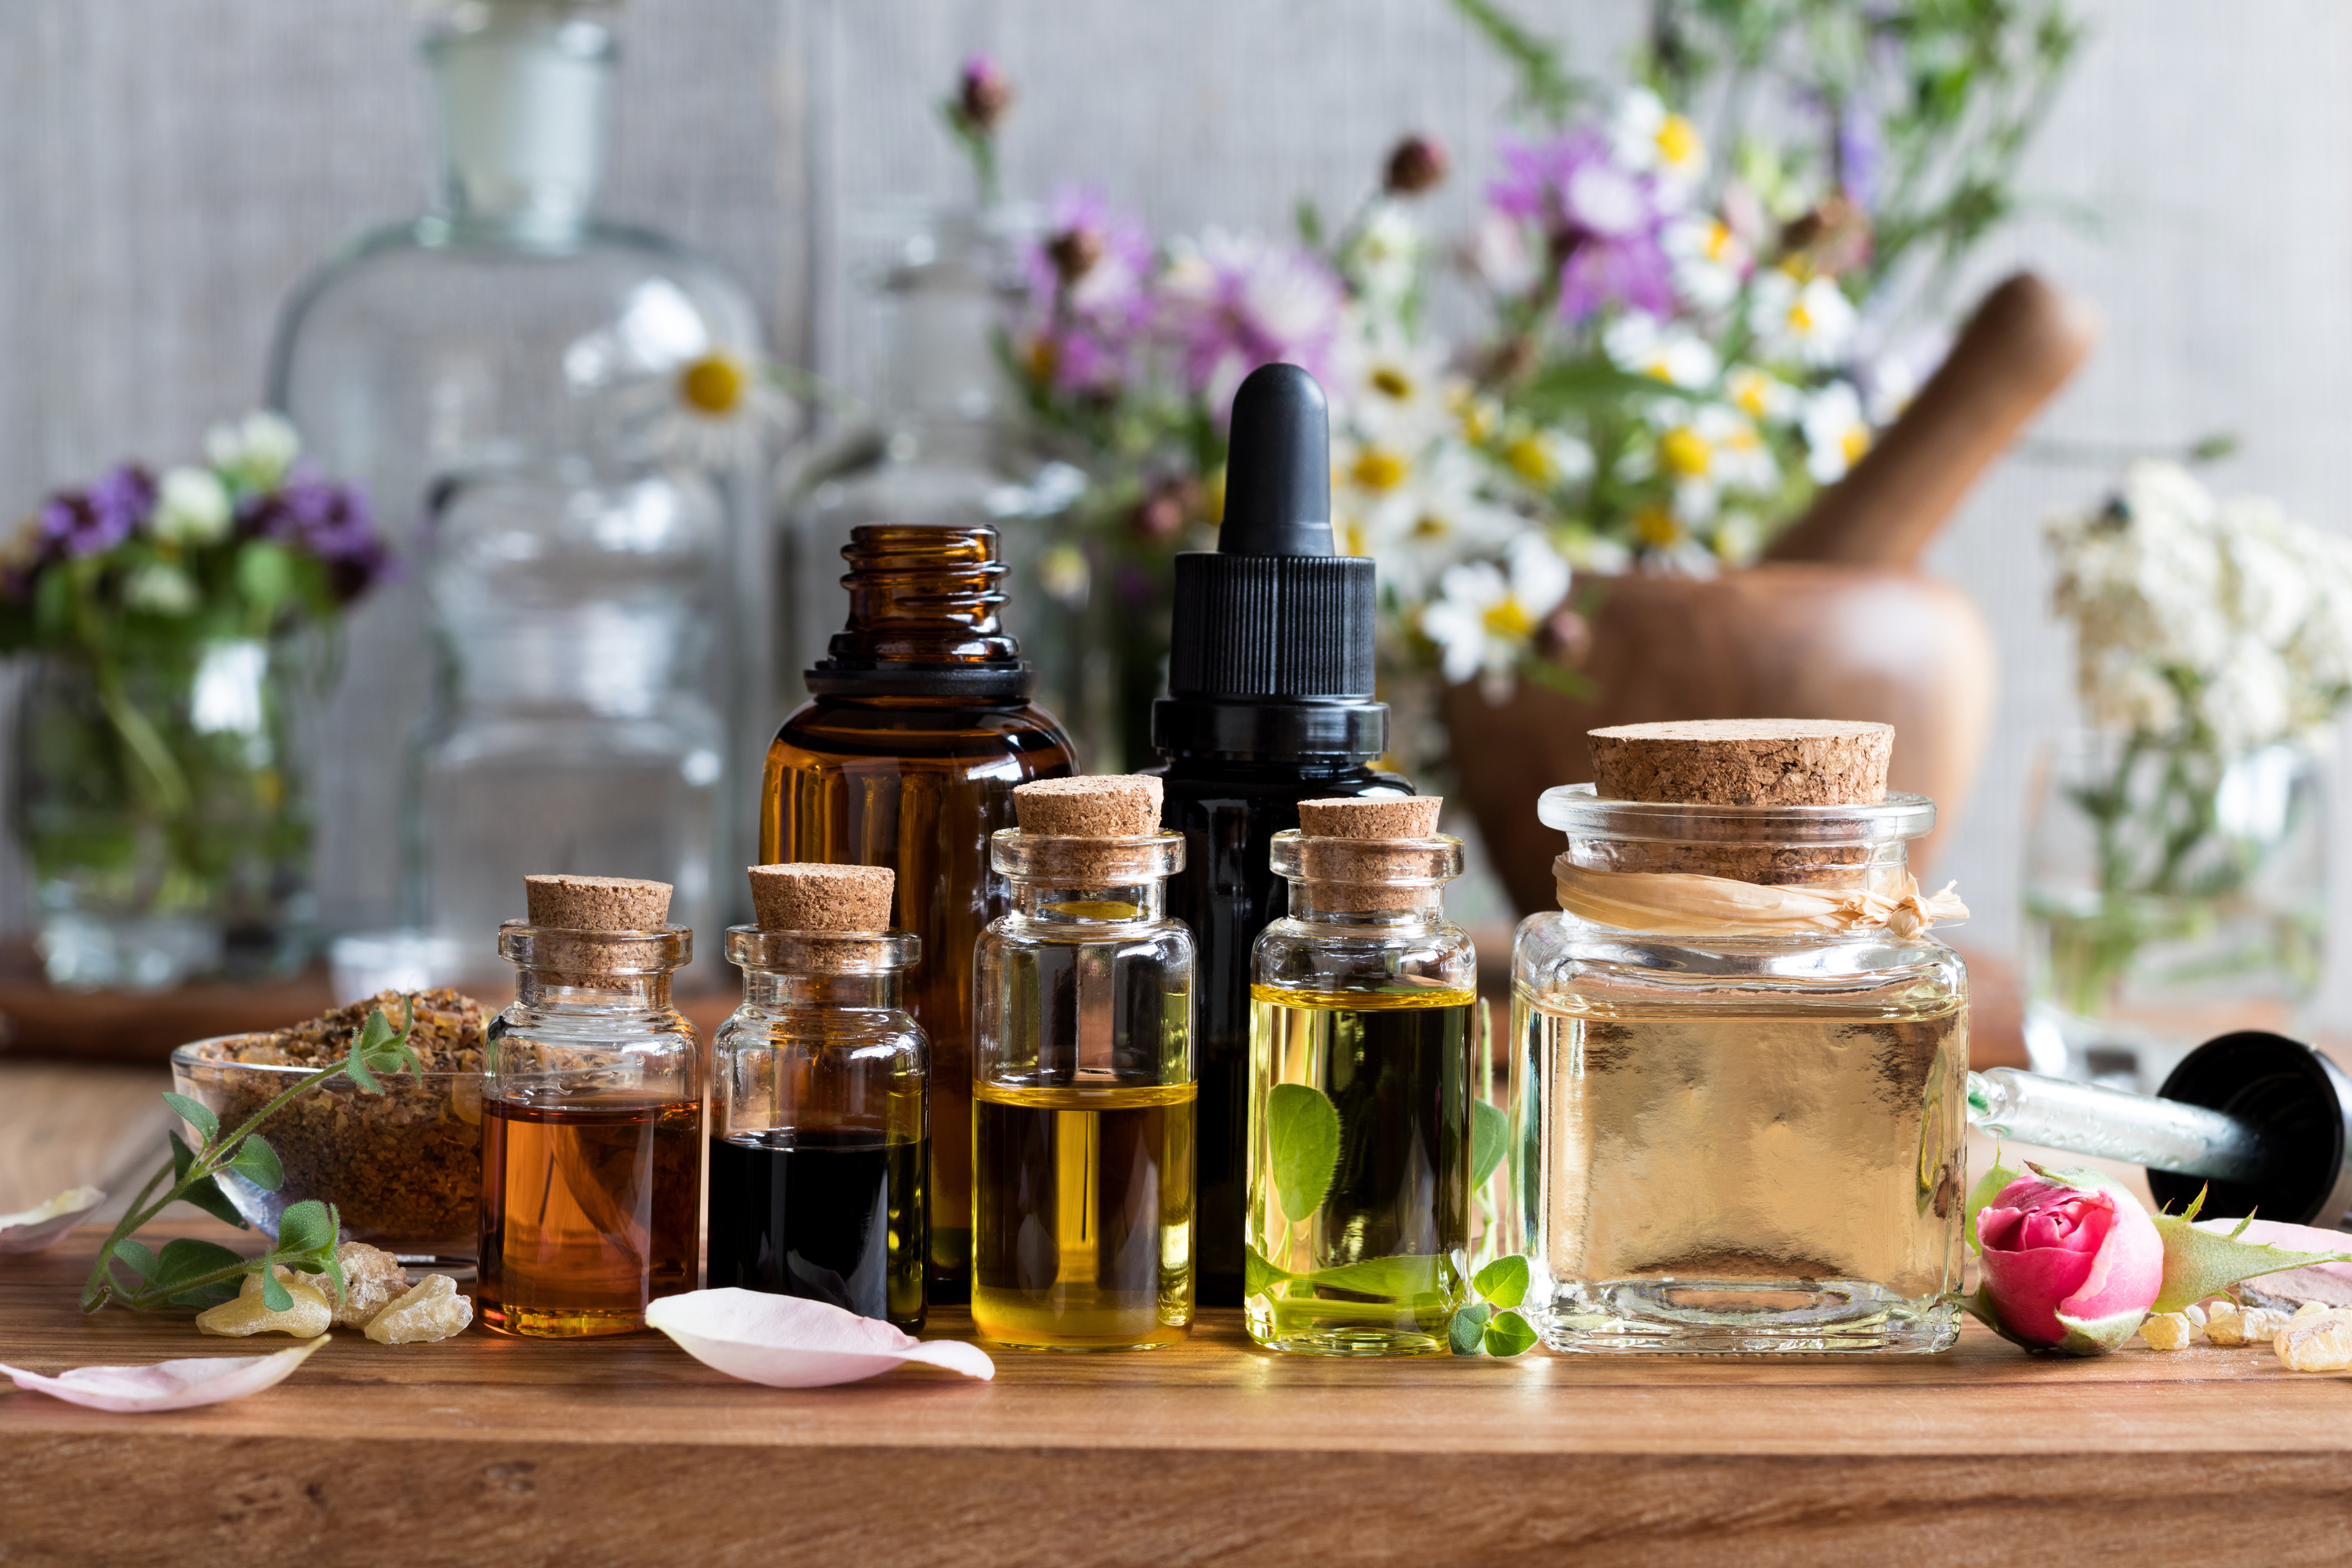 Essential oils help with so many things. These are tips to help you naturally get rid of headaches with essential oils.